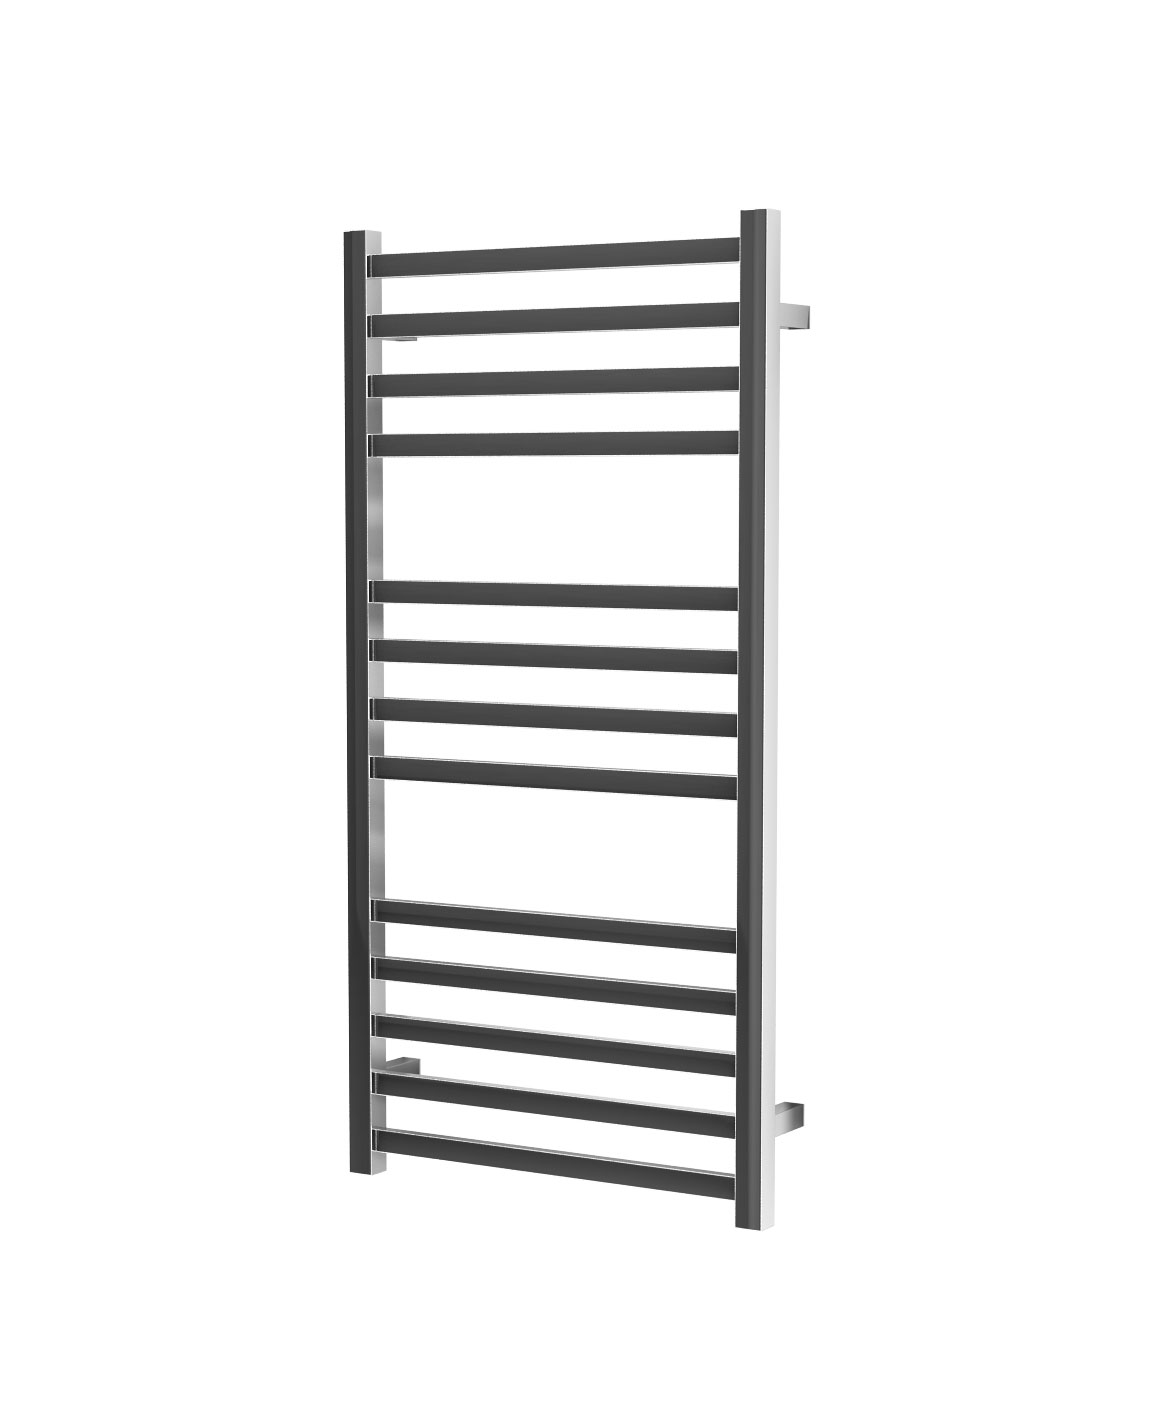 Eastgate Leo 304 Stainless Steel Towel Rails